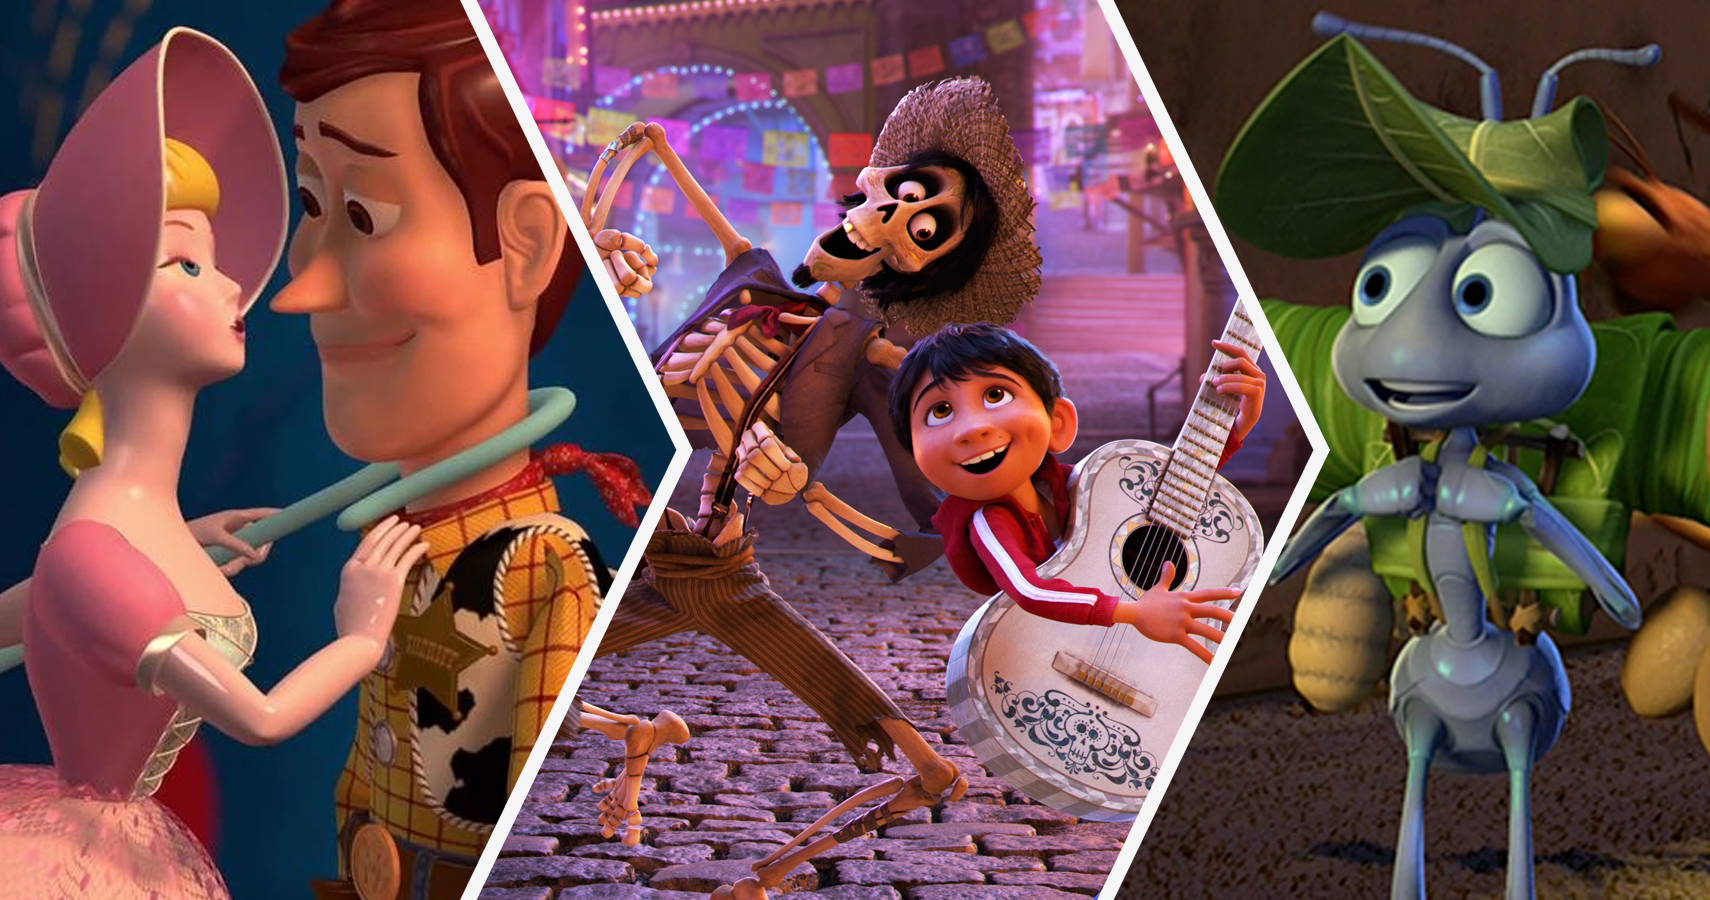 pixar movies images reverse search